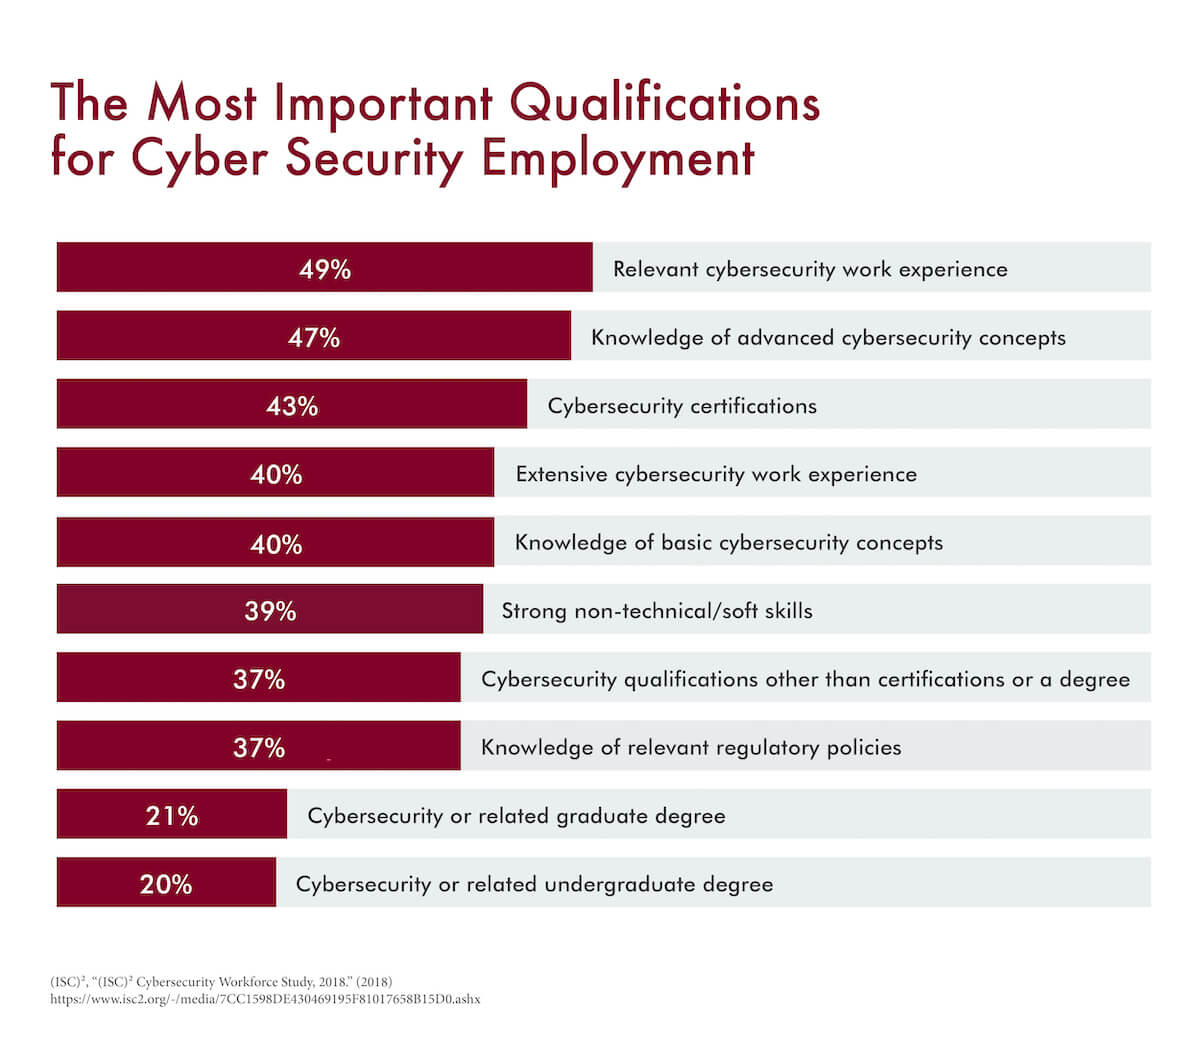 A graph that highlights the most important qualifications for aspiring cybersecurity professionals to gain employment.